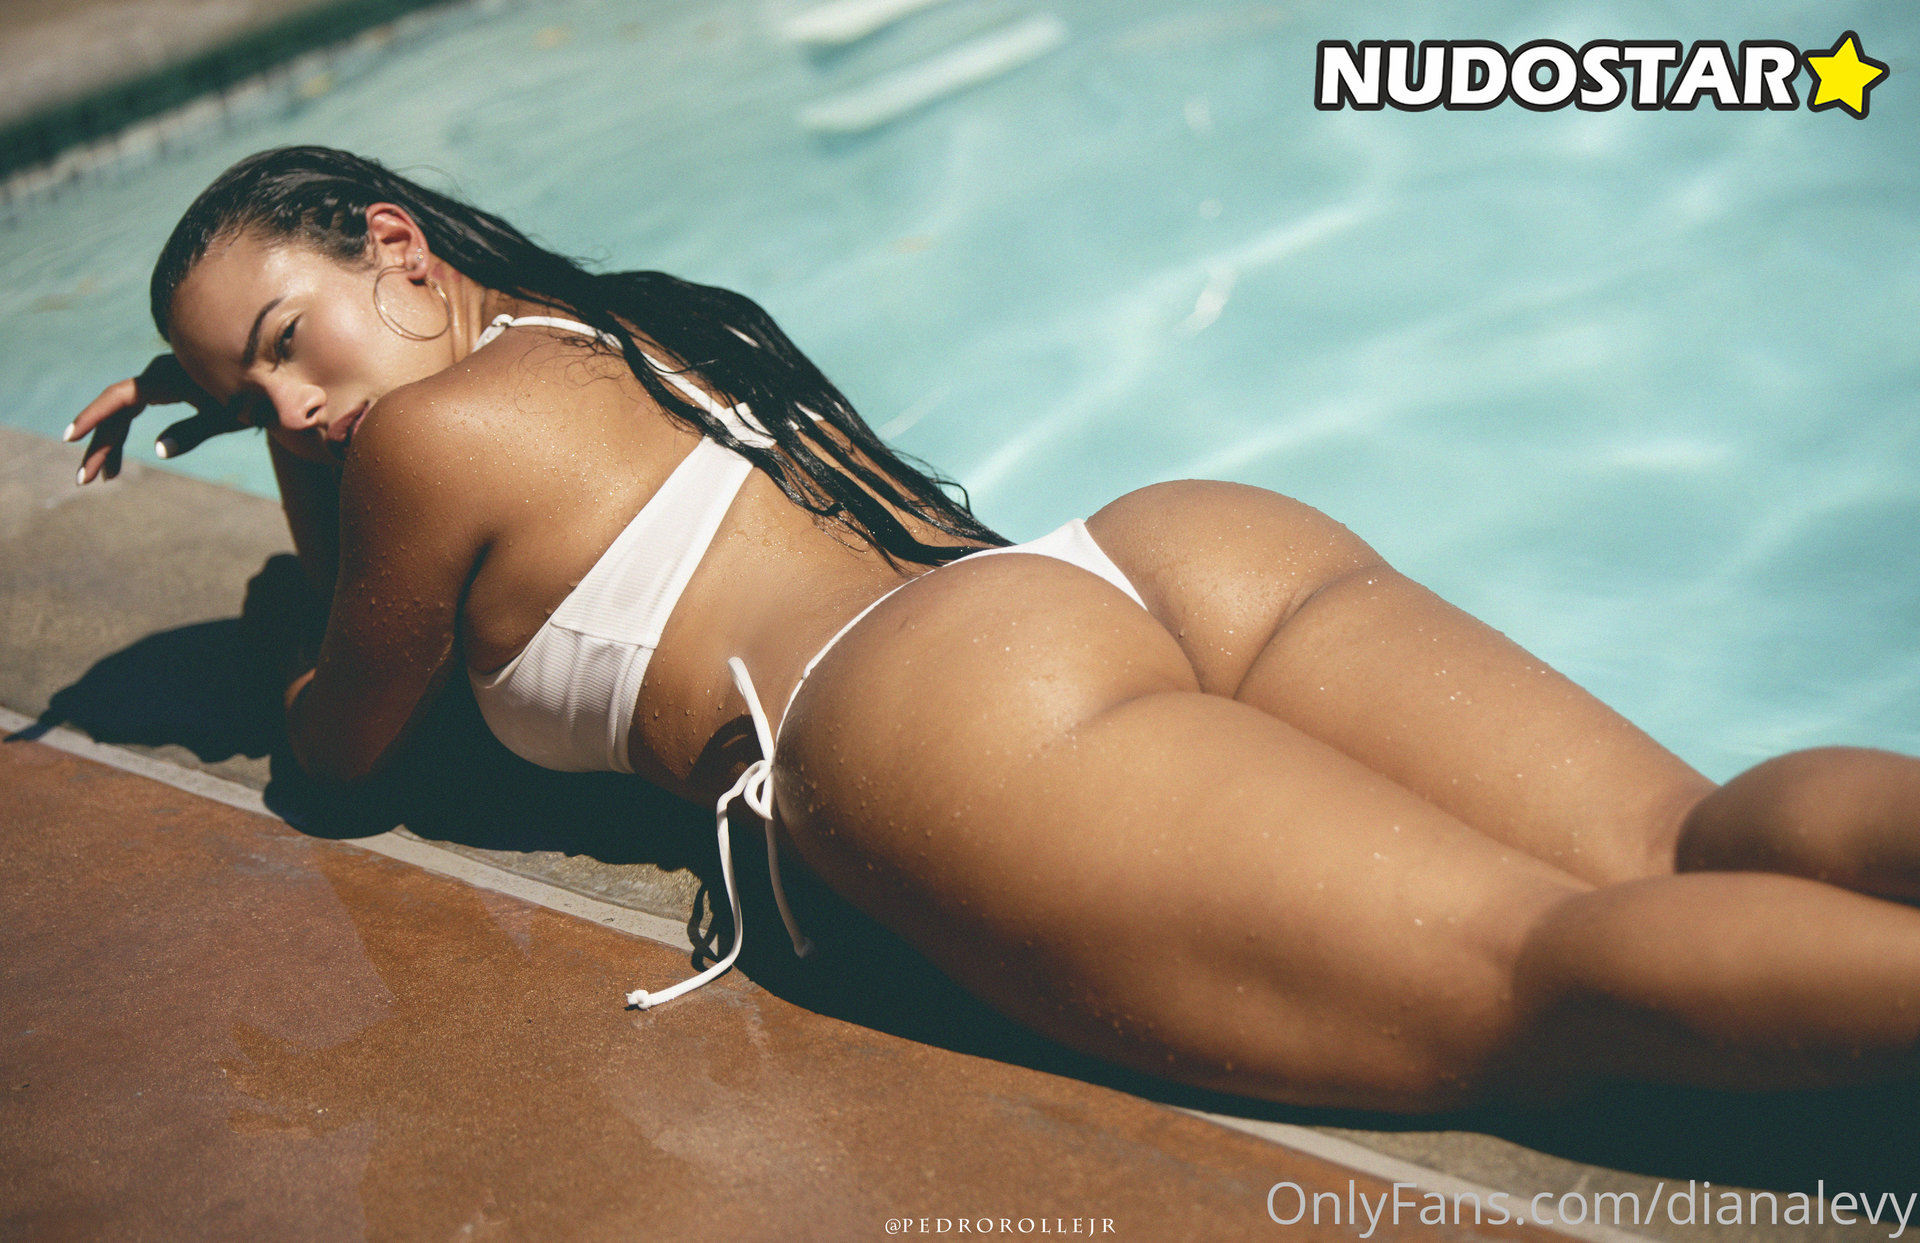 diana levy Leaked Photo 41